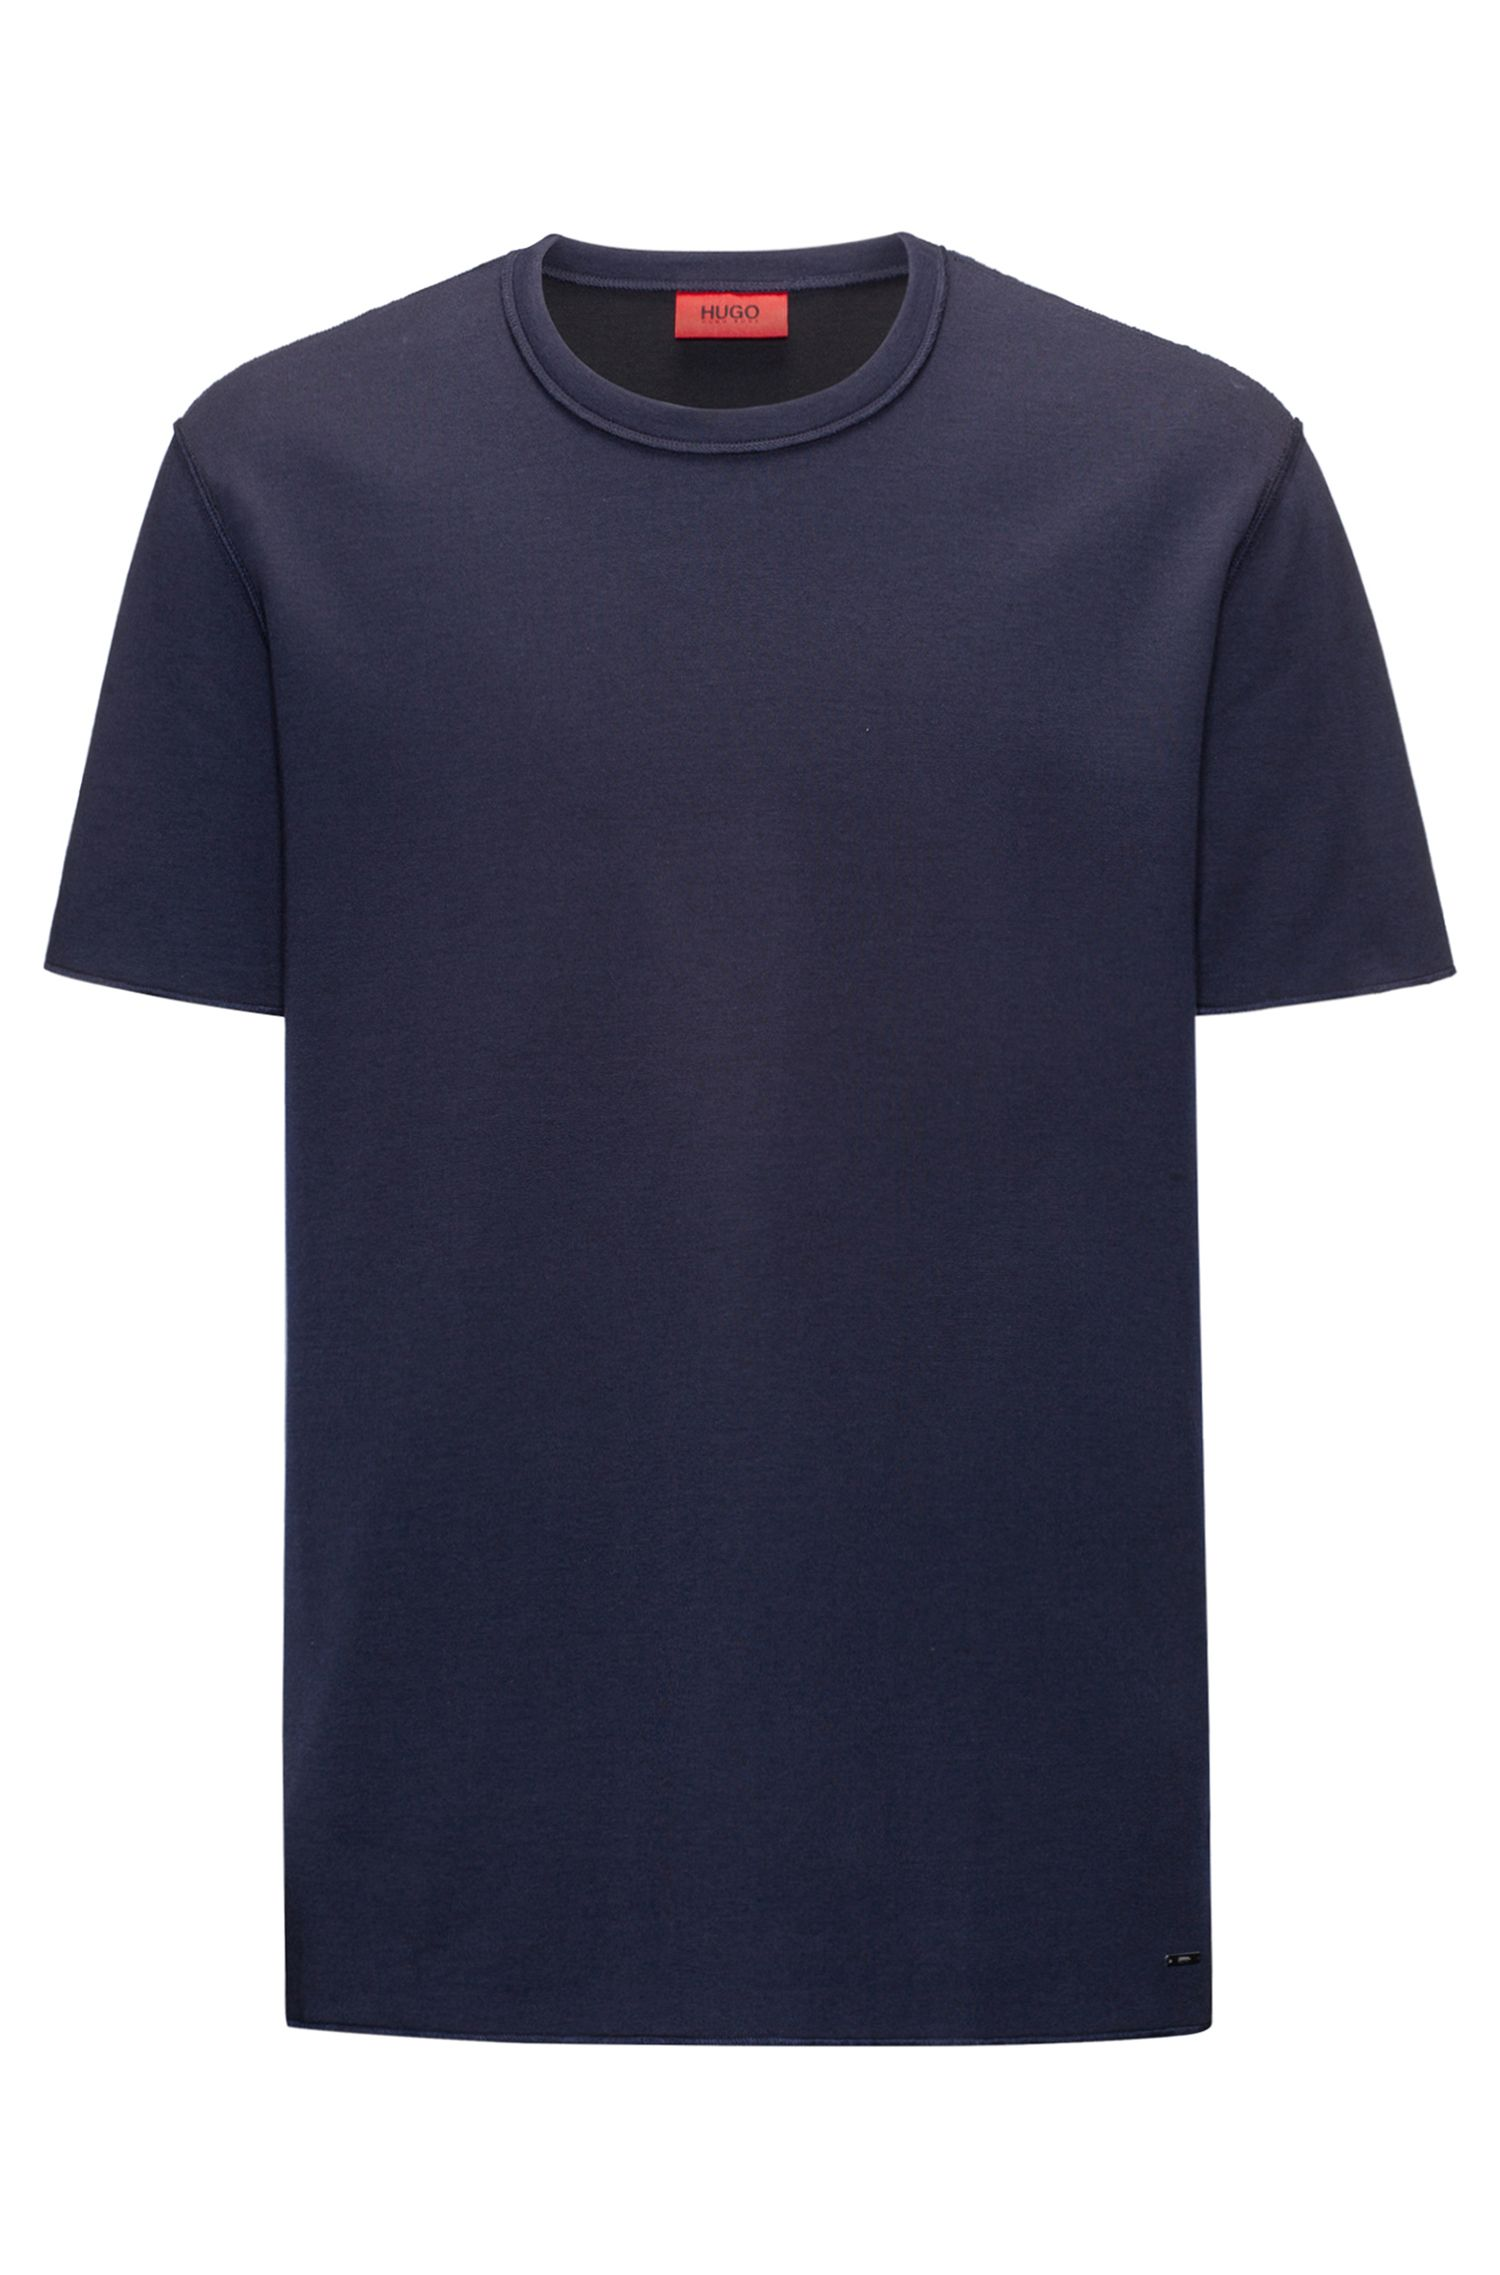 Cotton Blend T-Shirt | Dendrix, Dark Blue